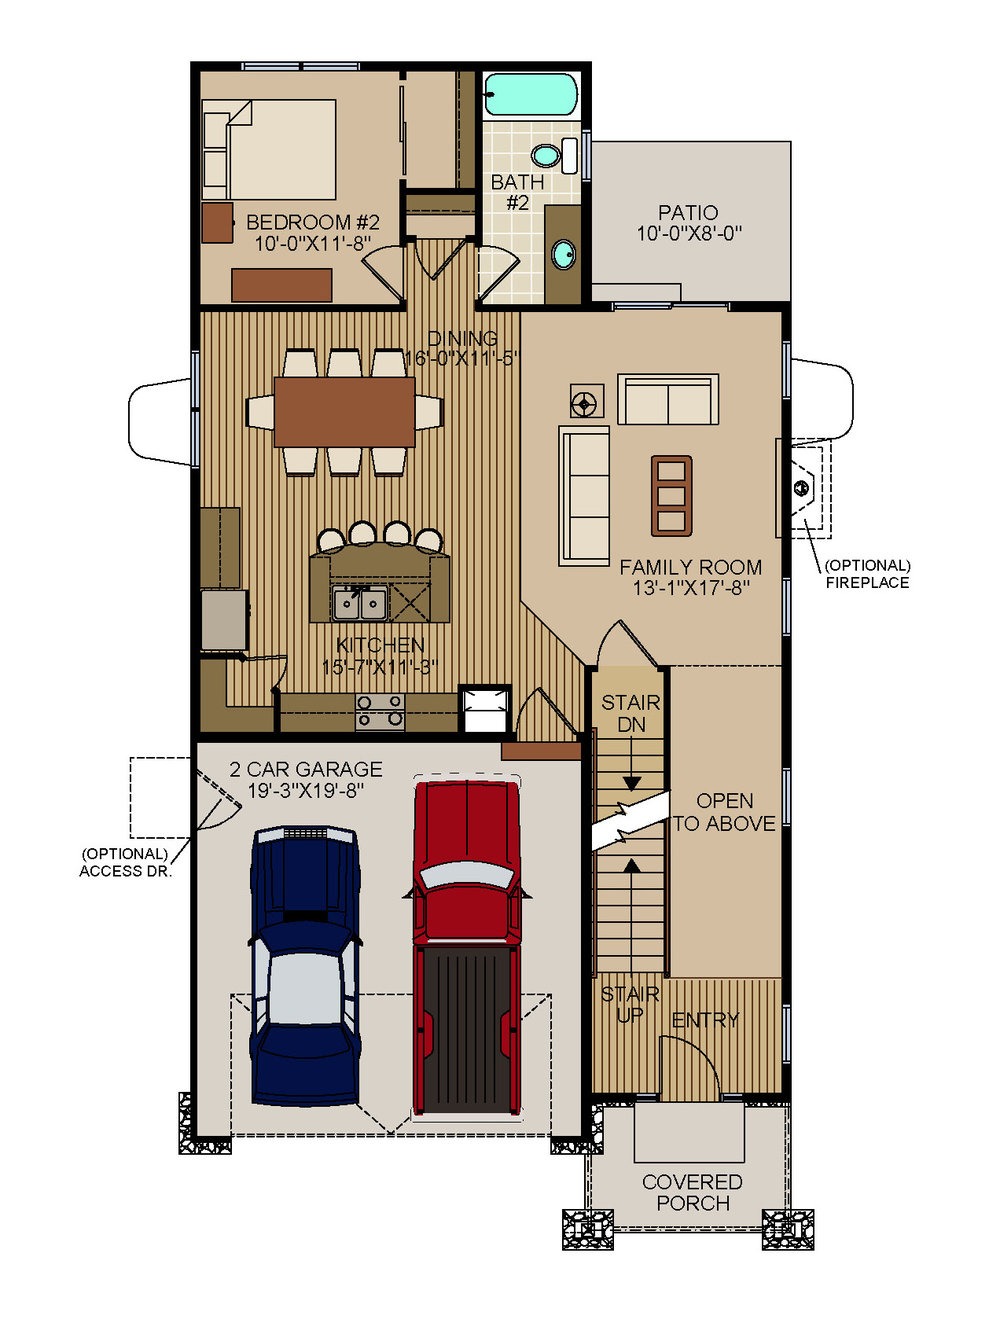 2013magnolia-firstfloorplan.jpg